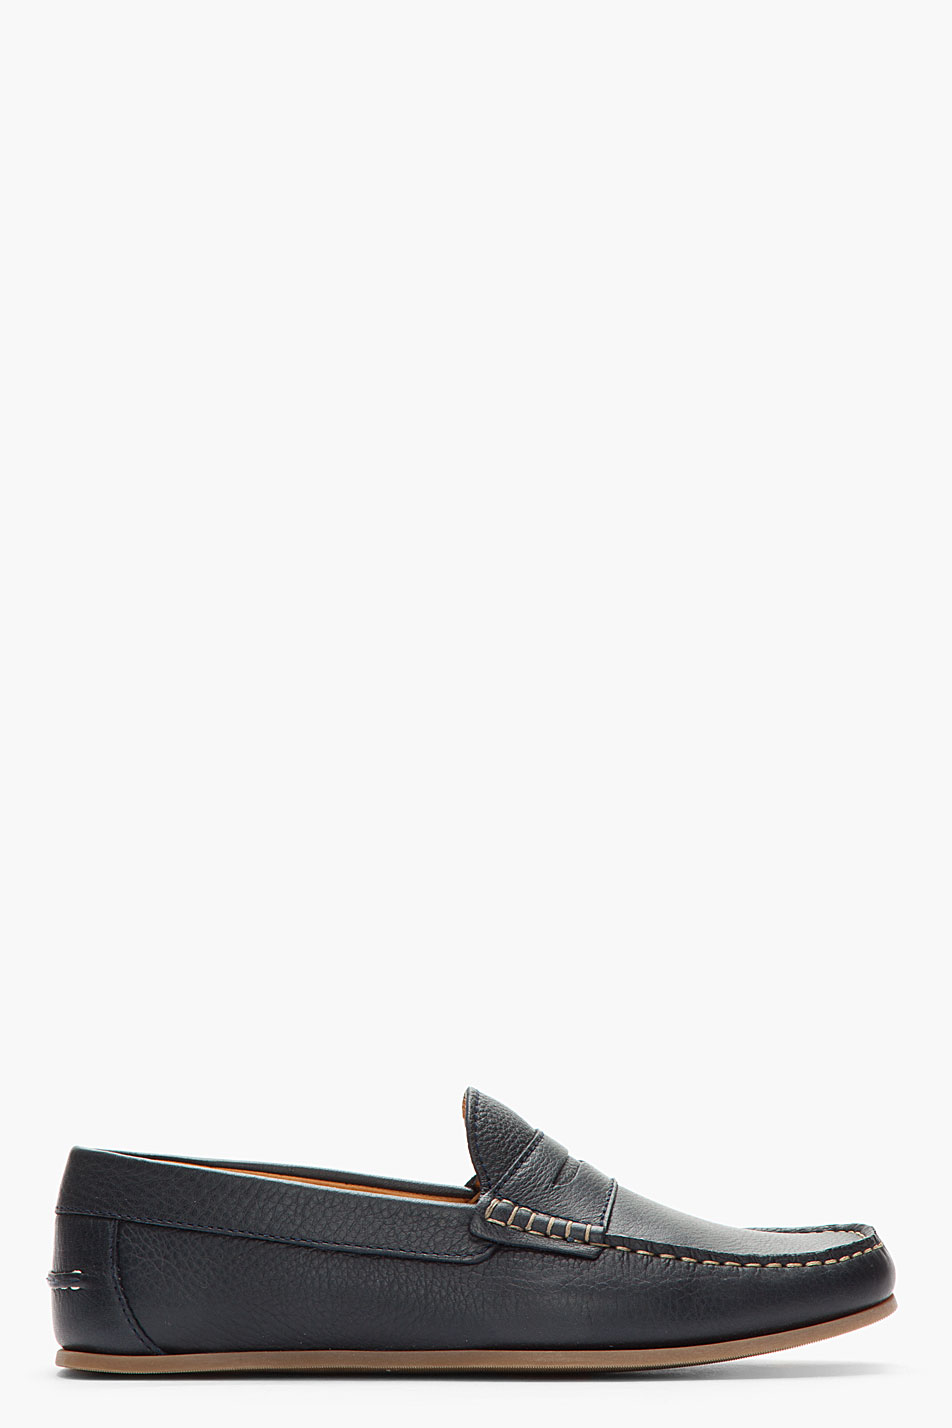 A.P.C. Midnight Blue Leather Penny Loafers for Men - Lyst